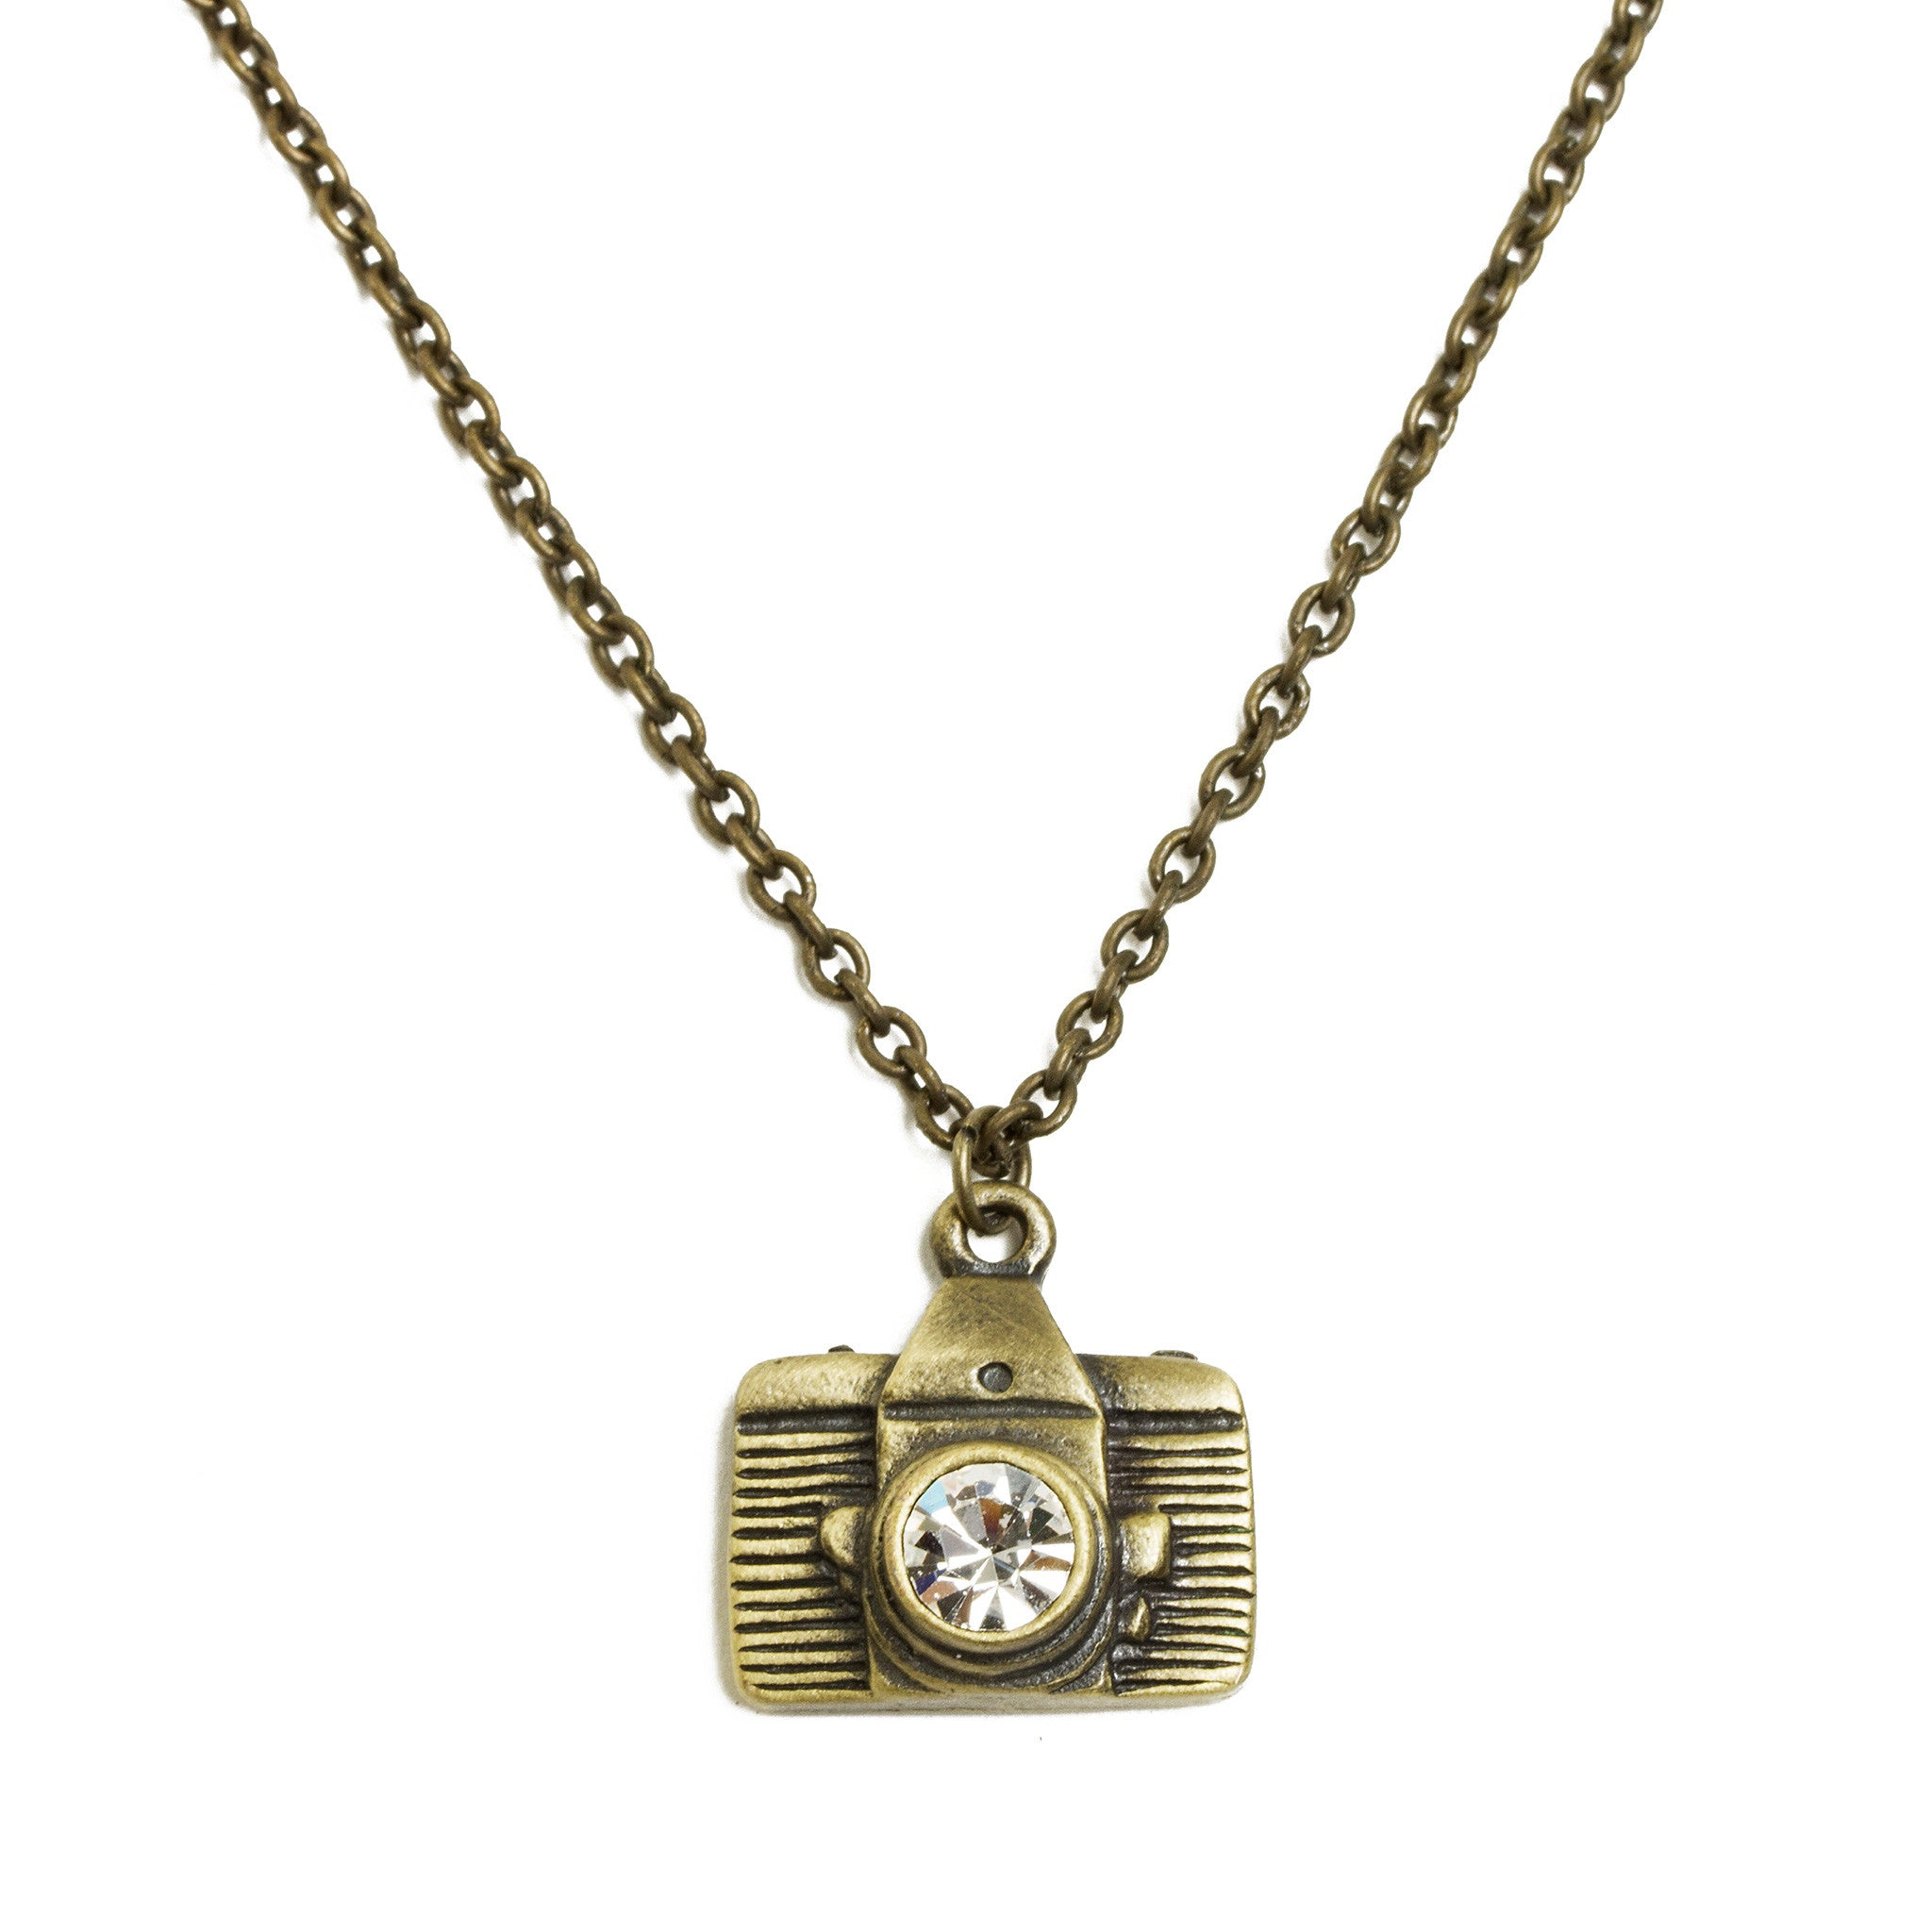 Camera necklace gold tone the getty store camera necklace gold tone mozeypictures Image collections